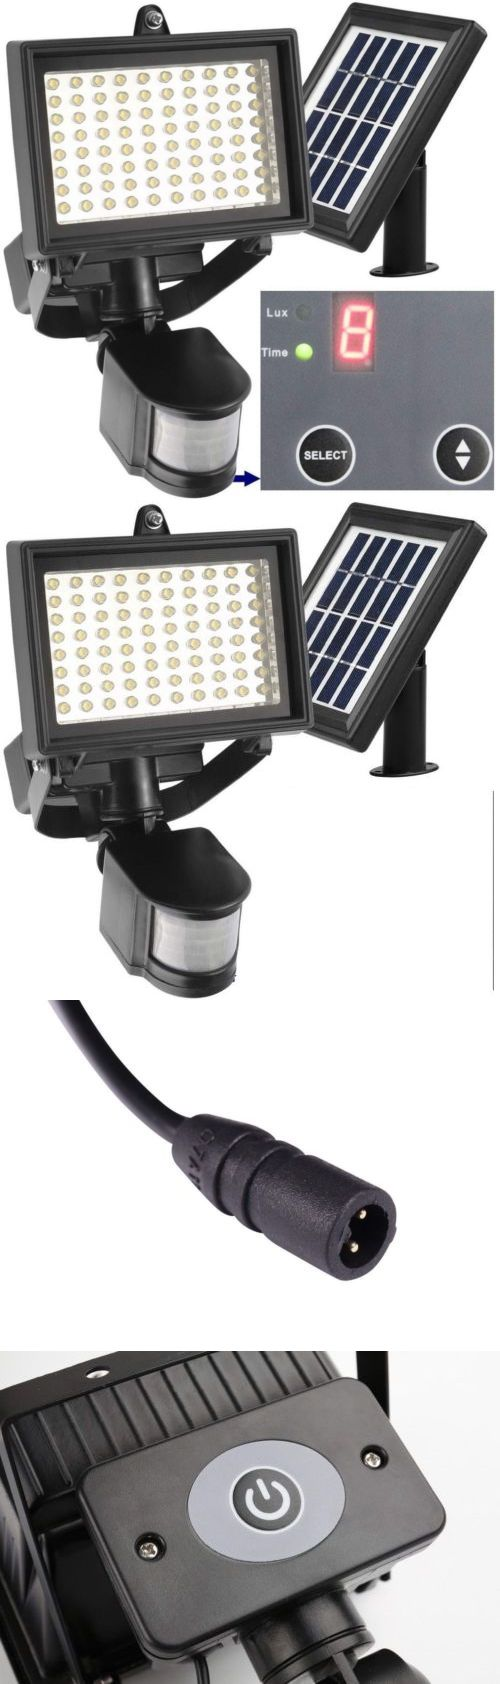 farm and garden: Outdoor Solar Flood Light Led Security Lamp Motion Sensor Waterproof Garden Path BUY IT NOW ONLY: $55.99